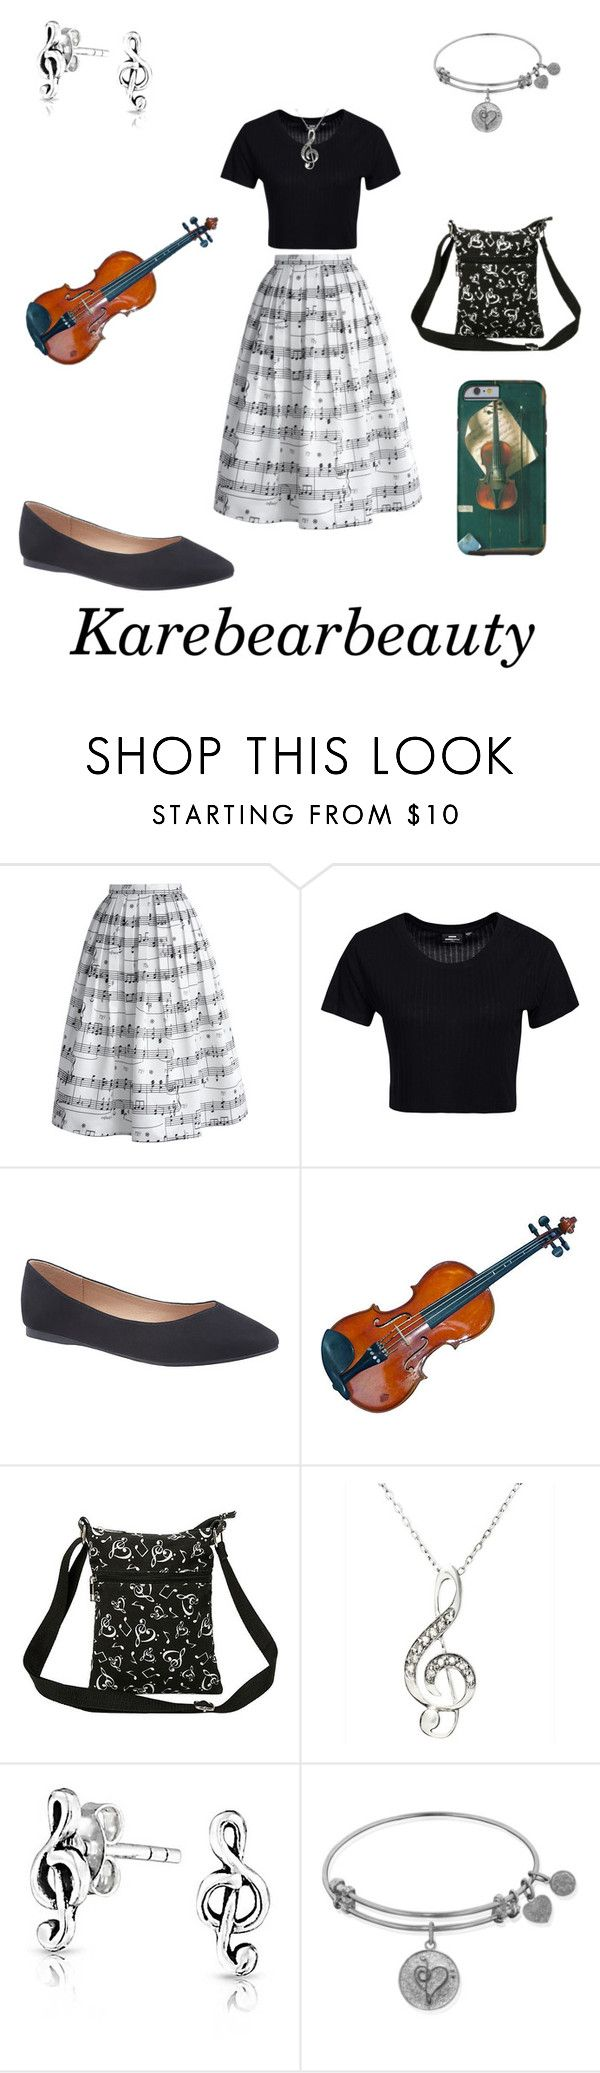 """Violin Recital"" by karebearbeauty ❤ liked on Polyvore featuring Chicwish, Dr. Denim, Lane Bryant and Bling Jewelry"